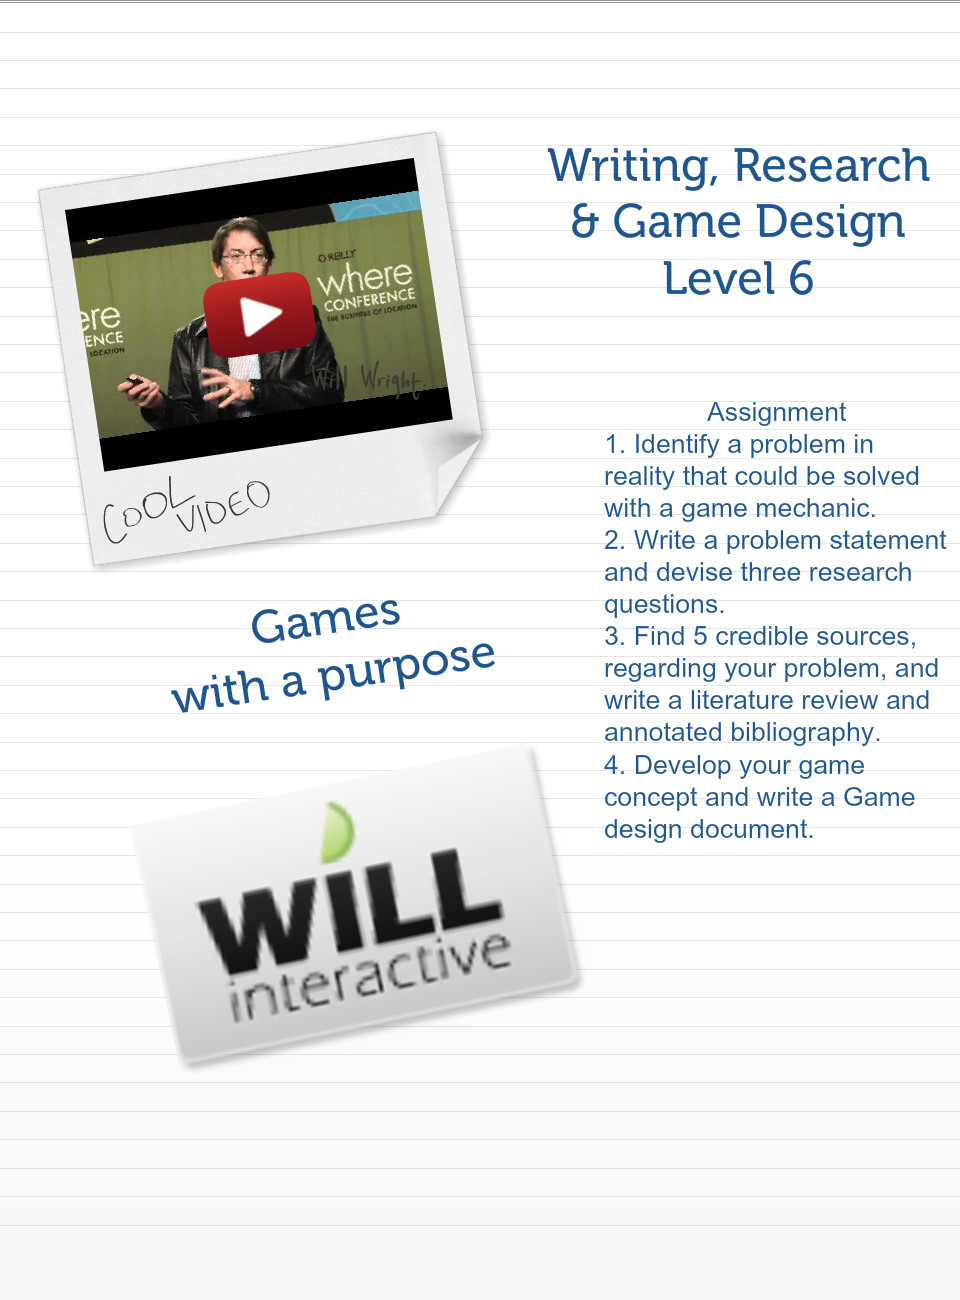 WRGD Level Text Images Music Video Glogster EDU - How to write a game design document